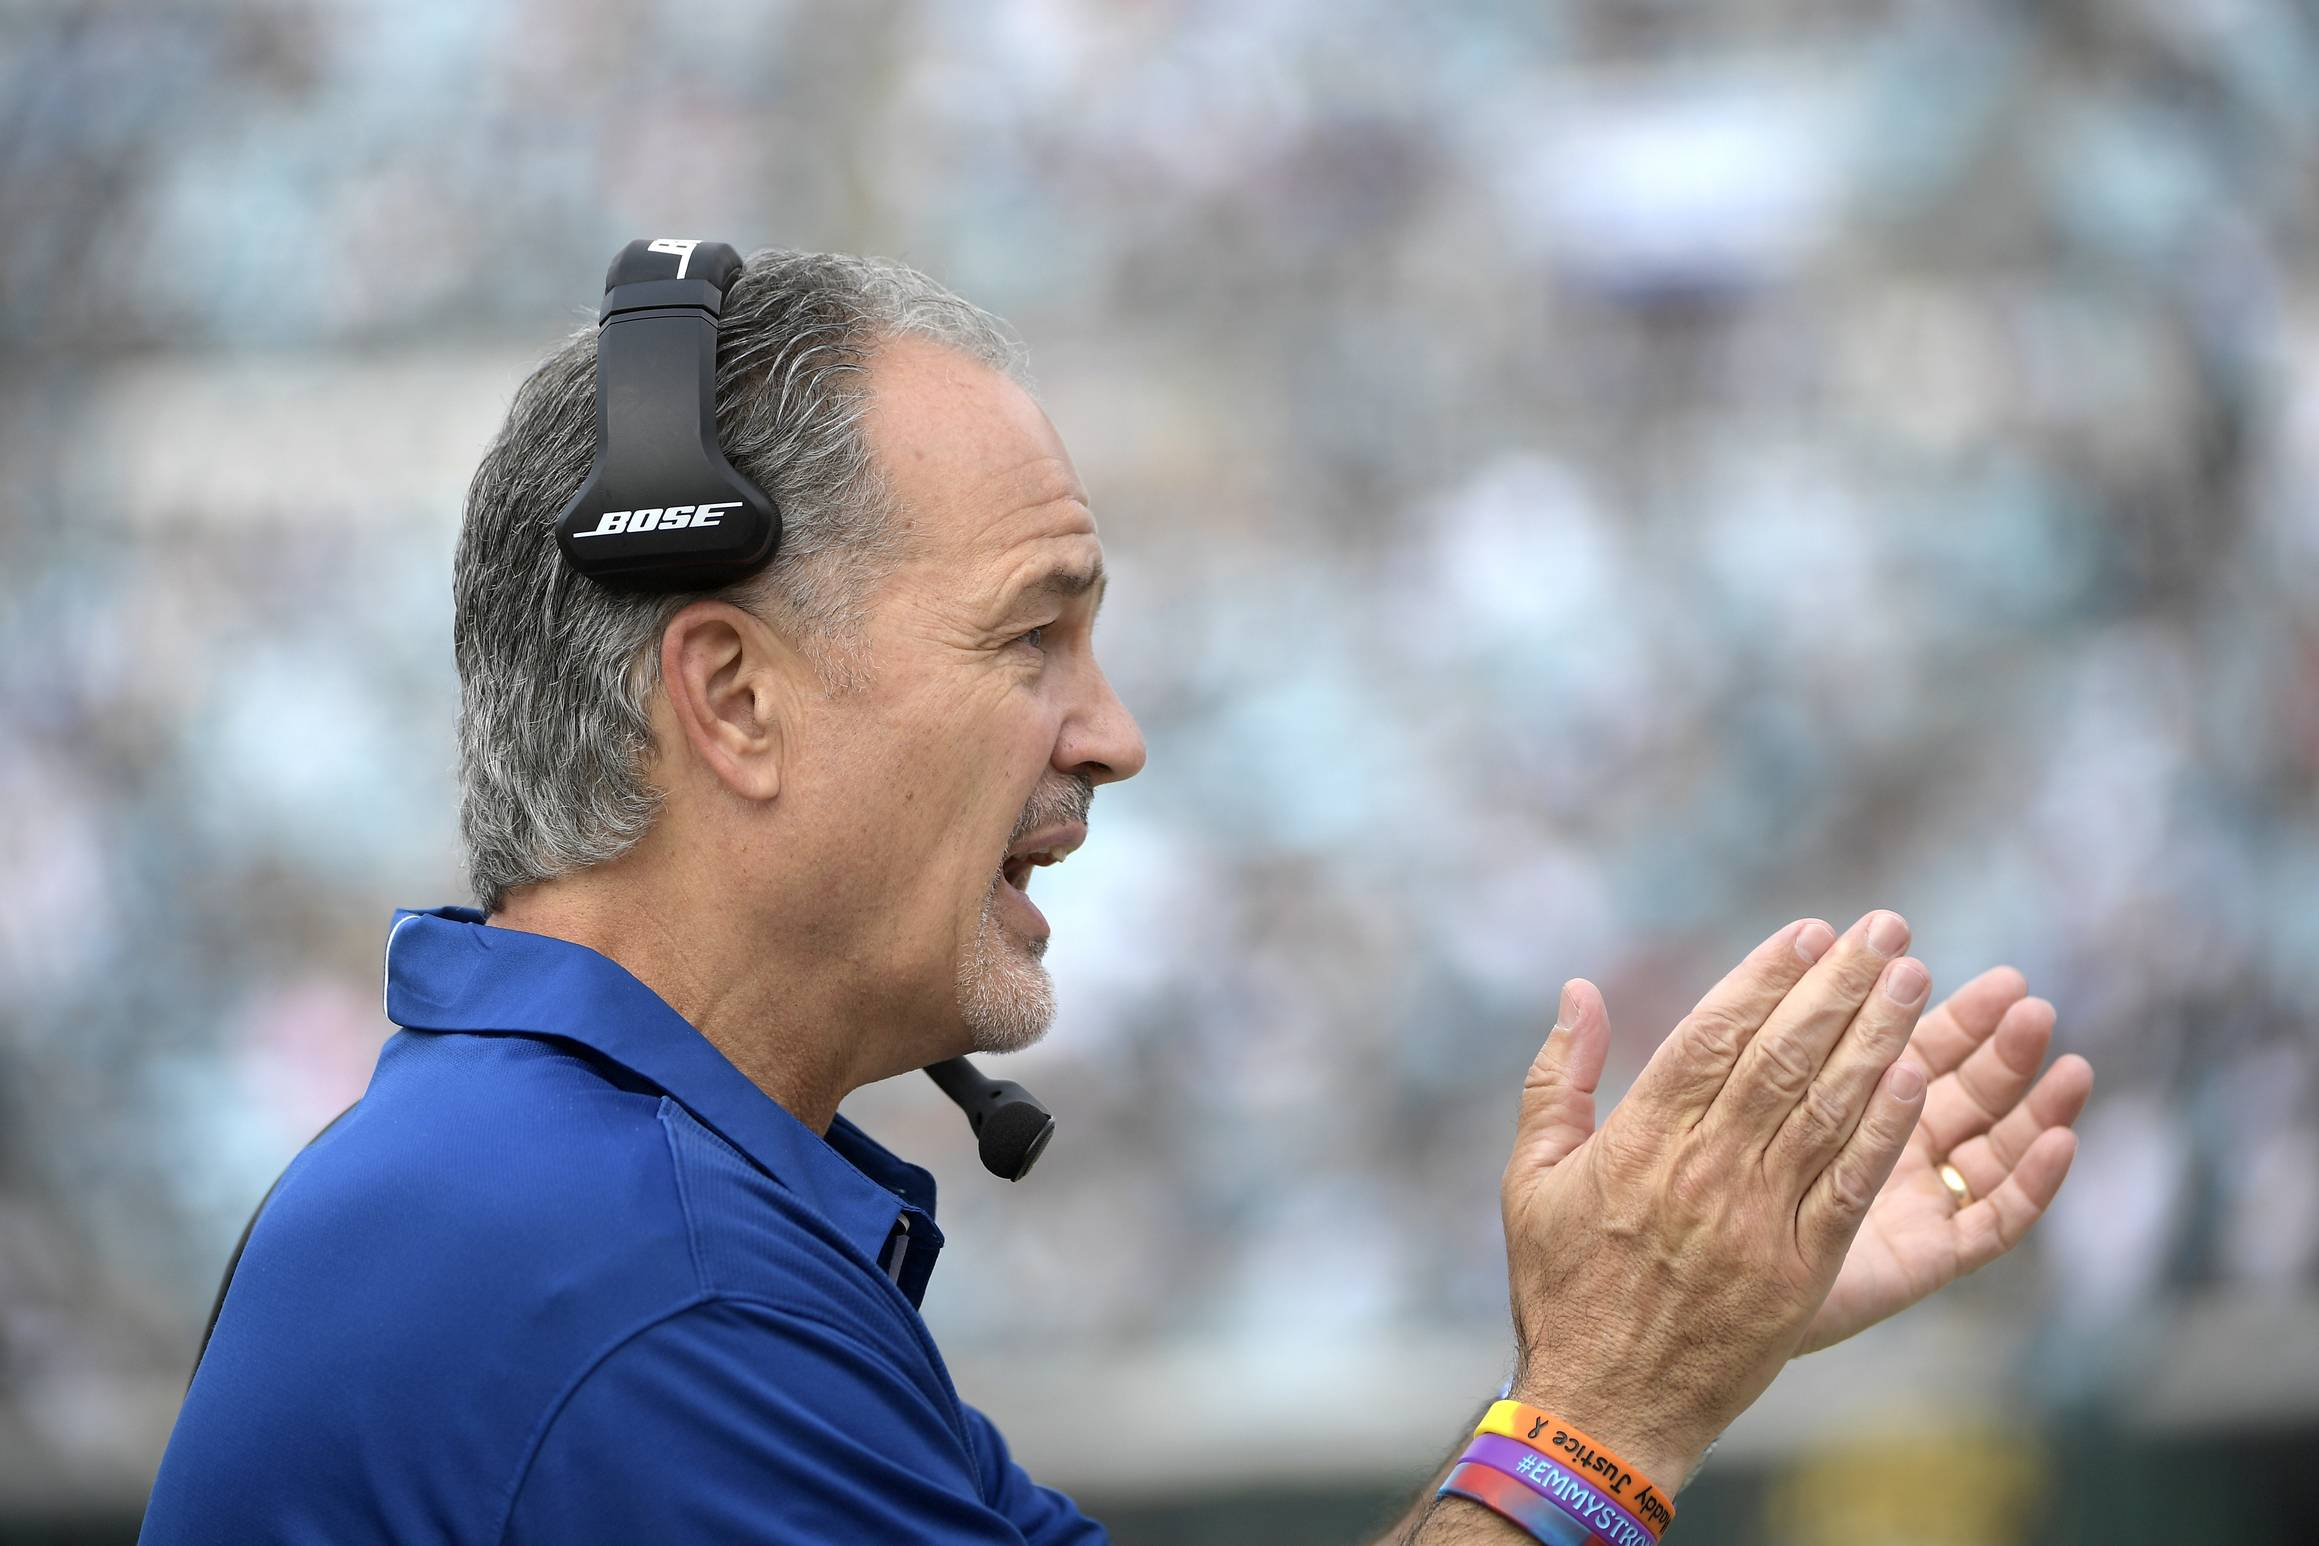 The Bears hired former Colts coach Pagano to replace Vic Fangio as defensive coordinator Friday, Jan. 11, 2019, hoping he can help them build on what they accomplished this season. Pagano inherits one of the NFL's stingiest defenses after Fangio left to take the Denver Broncos' head coaching job.